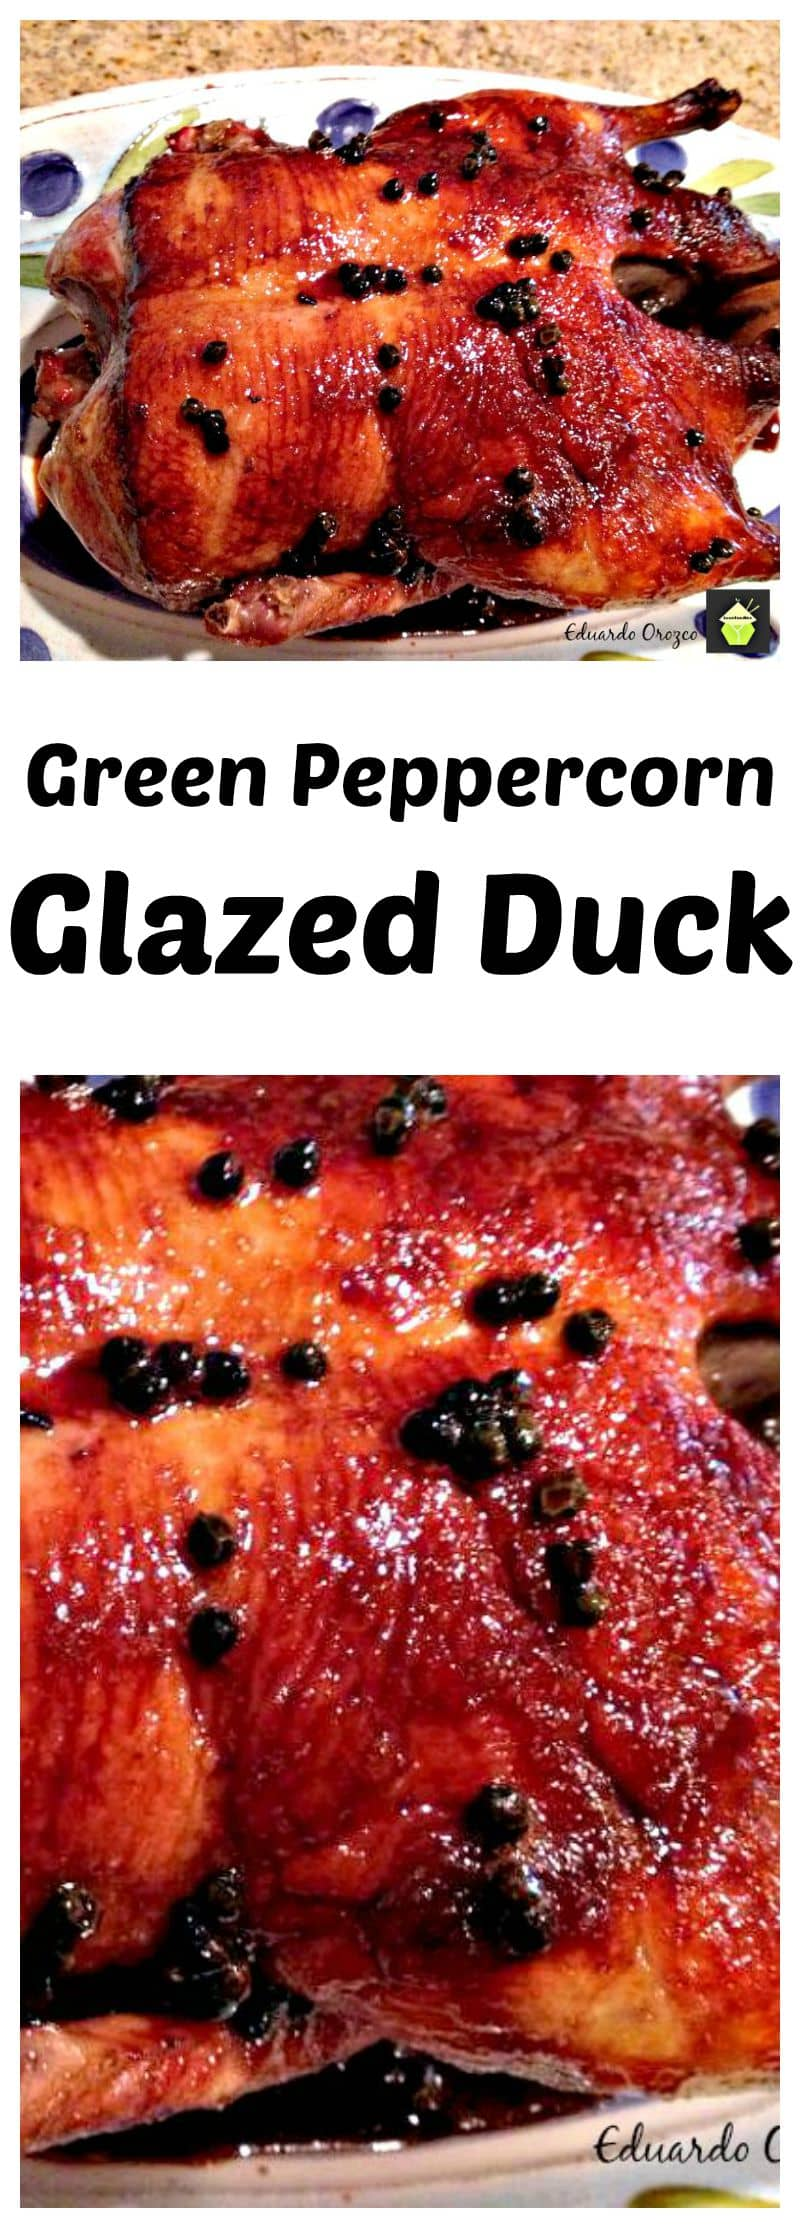 Green Peppercorn Glazed Duck - Great flavours and easy technique for cooking duck